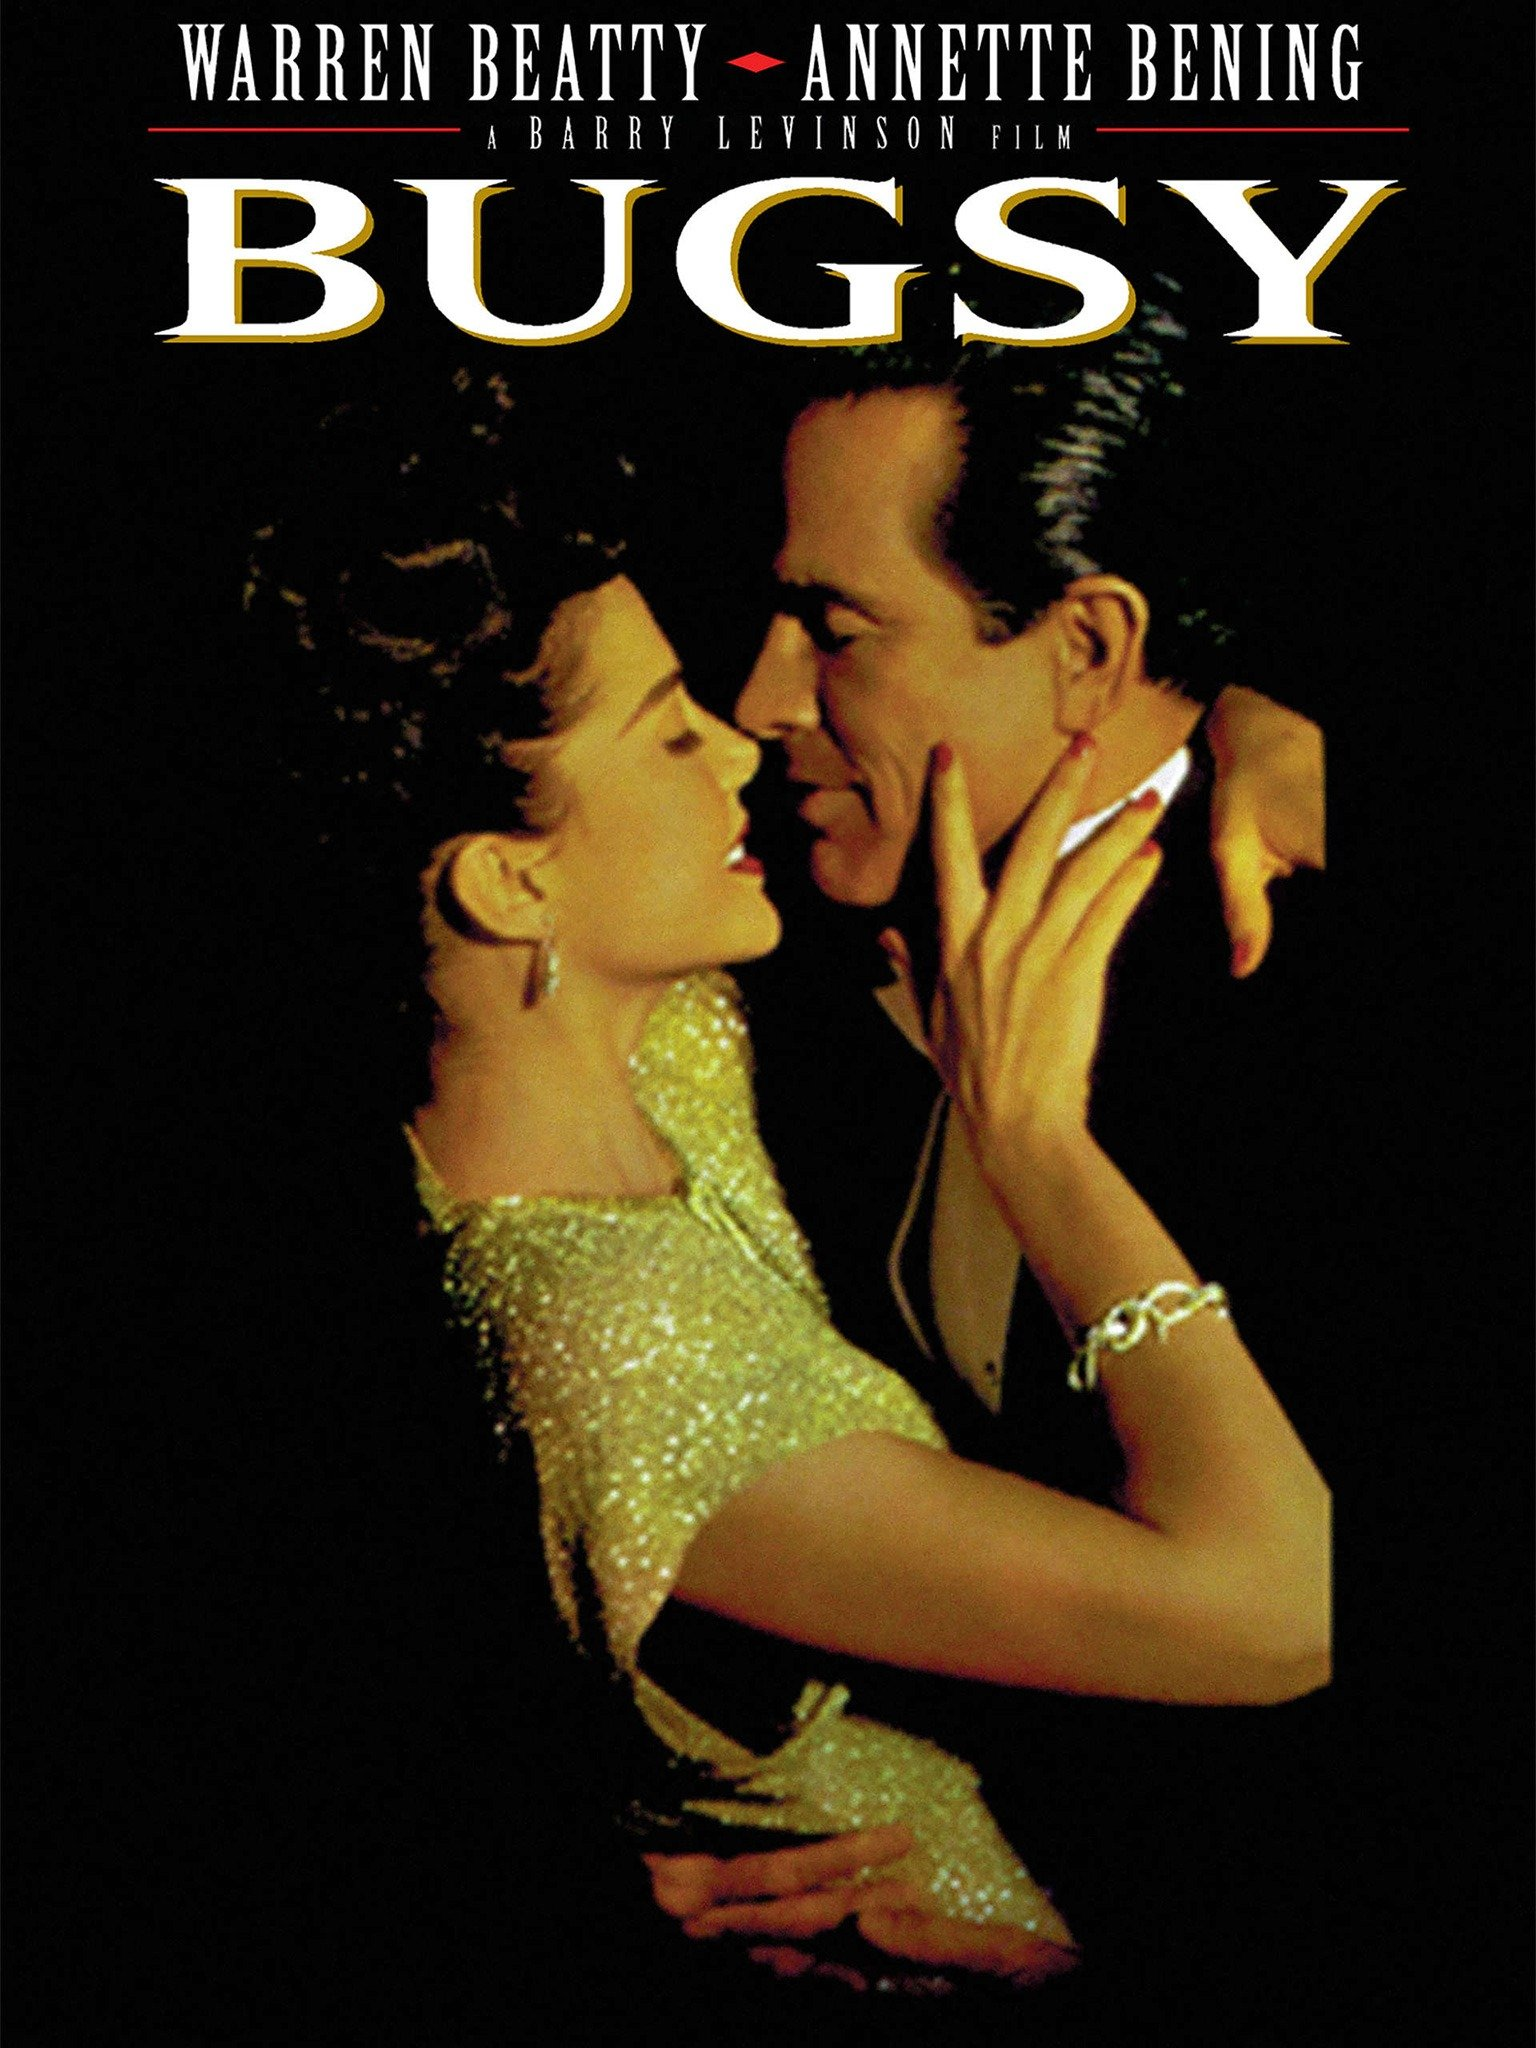 Bugsy (1991) - Rotten Tomatoes